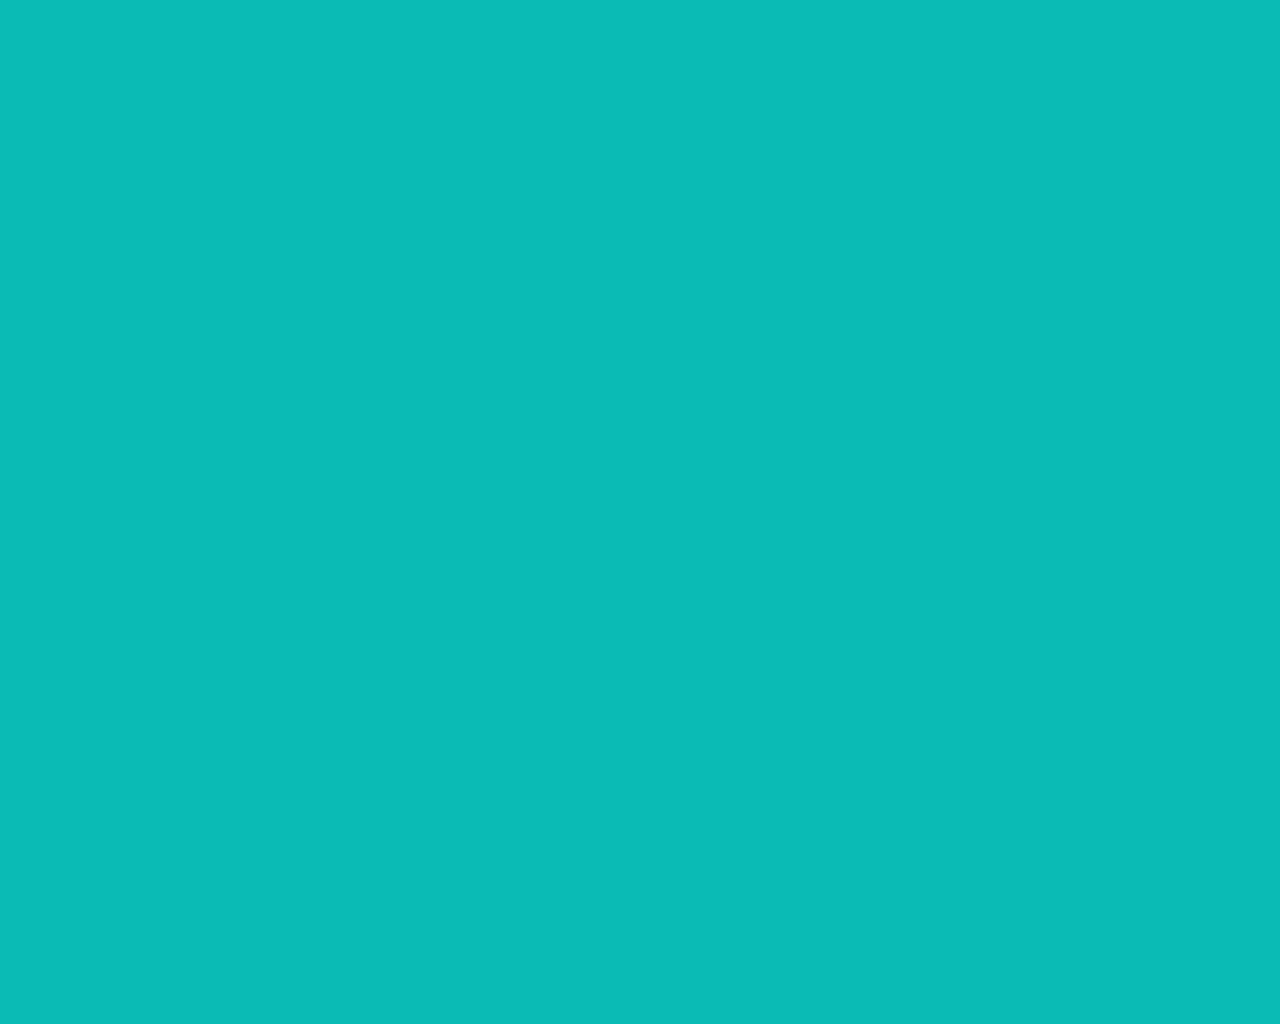 Tiffany Blue Color Code >> Tiffany Blue Wallpaper - WallpaperSafari